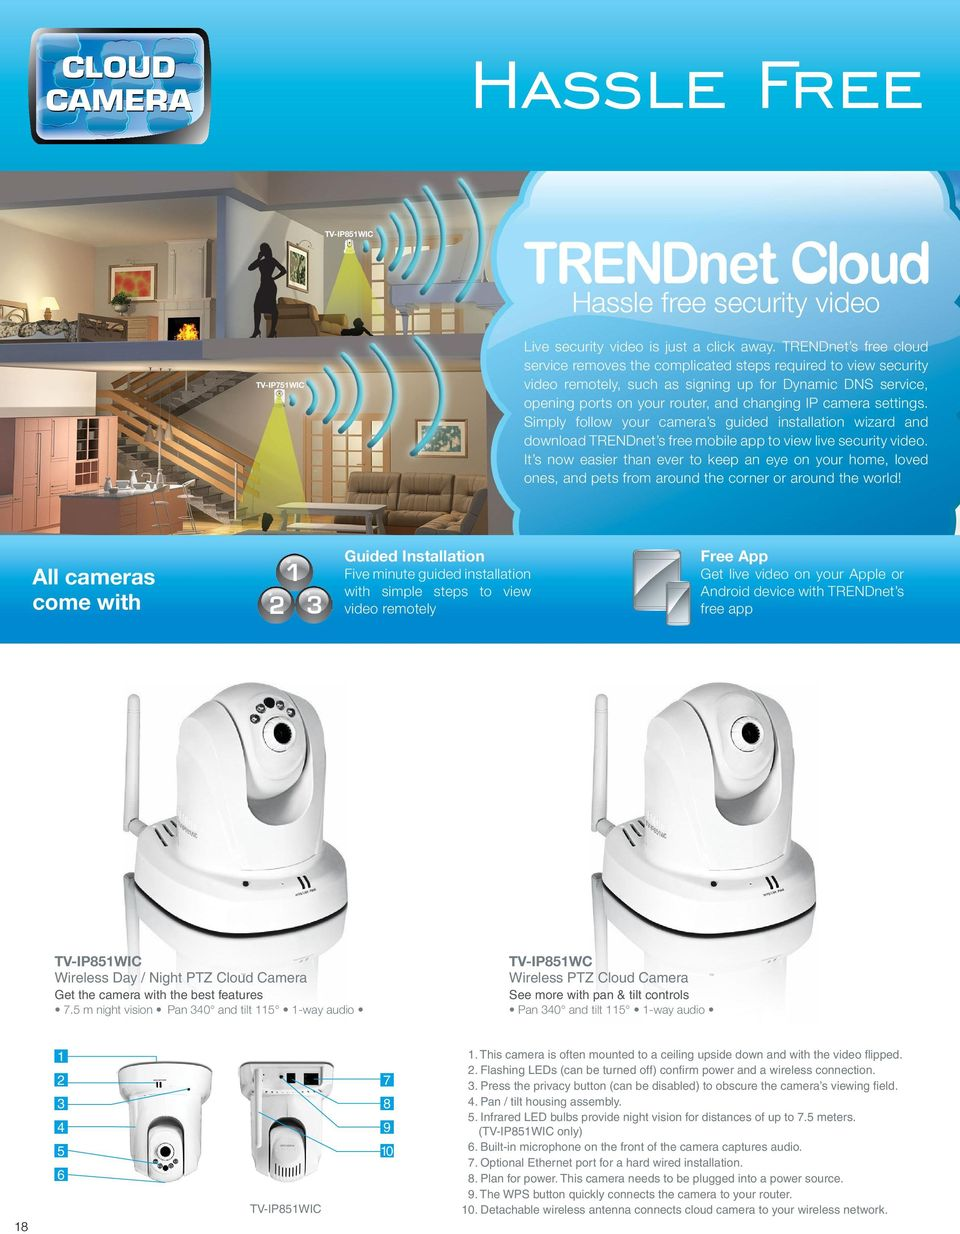 settings. Simply follow your camera s guided installation wizard and download TRENDnet s free mobile app to view live security video.